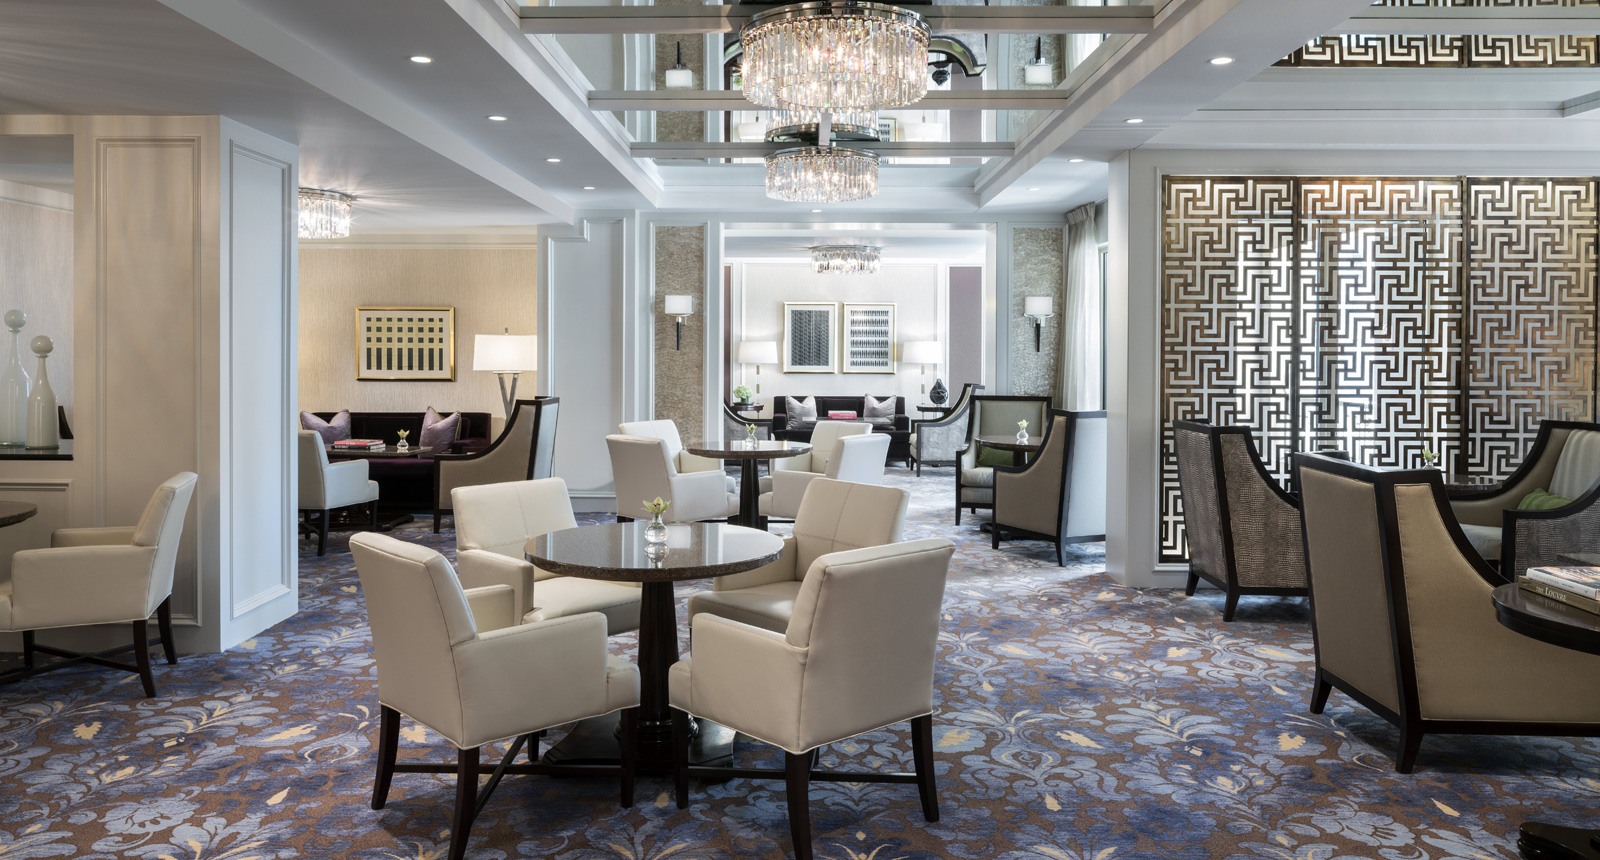 Aaa Inspections And Diamond Ratings Awards Voucher The Ritz Carlton Hotel Seoul Courtesy Of Dallas